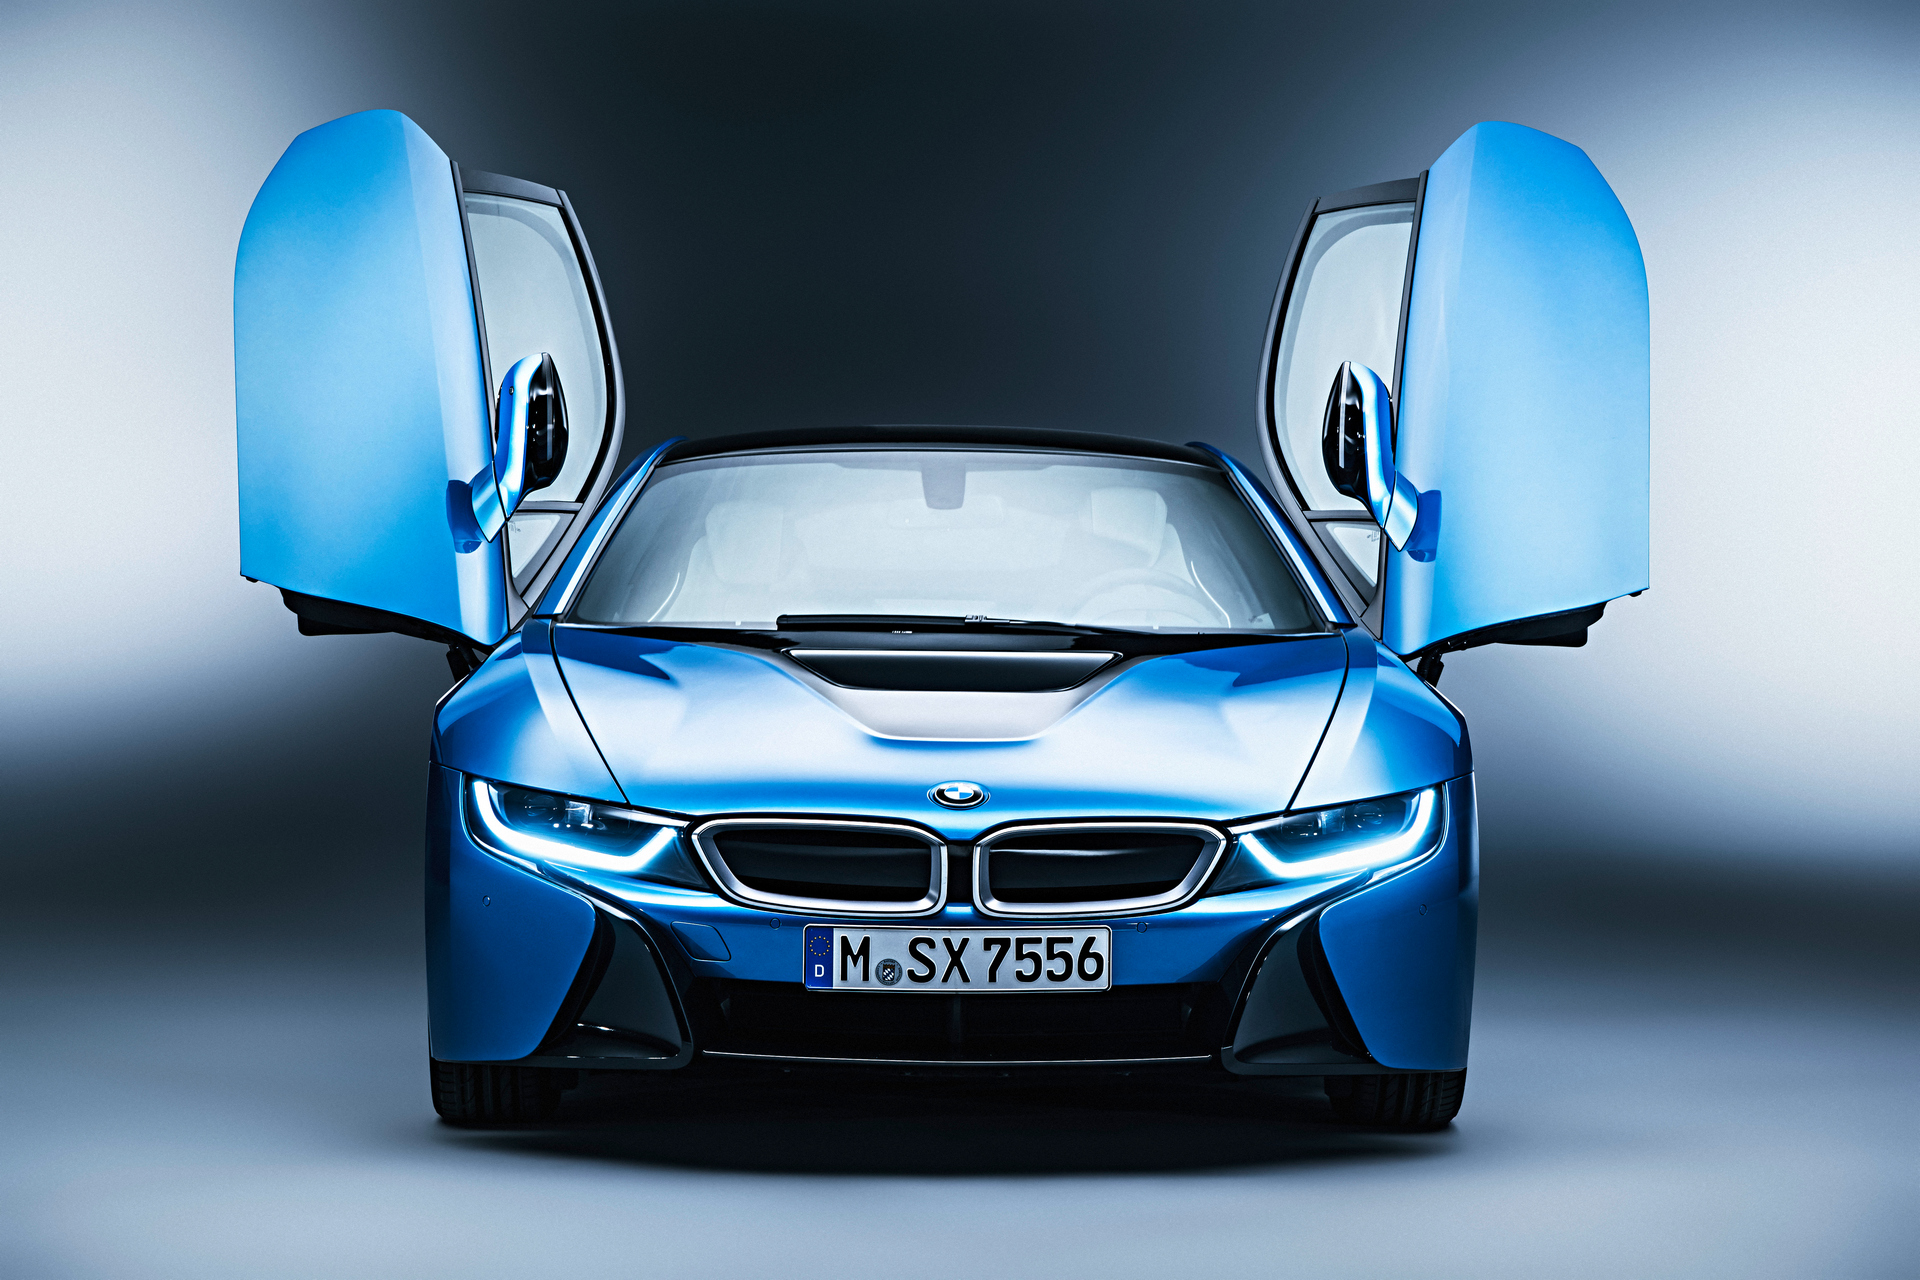 How Much Does A BMW Cost >> How Much Does a BMW i8 Cost? - Carrrs Auto Portal